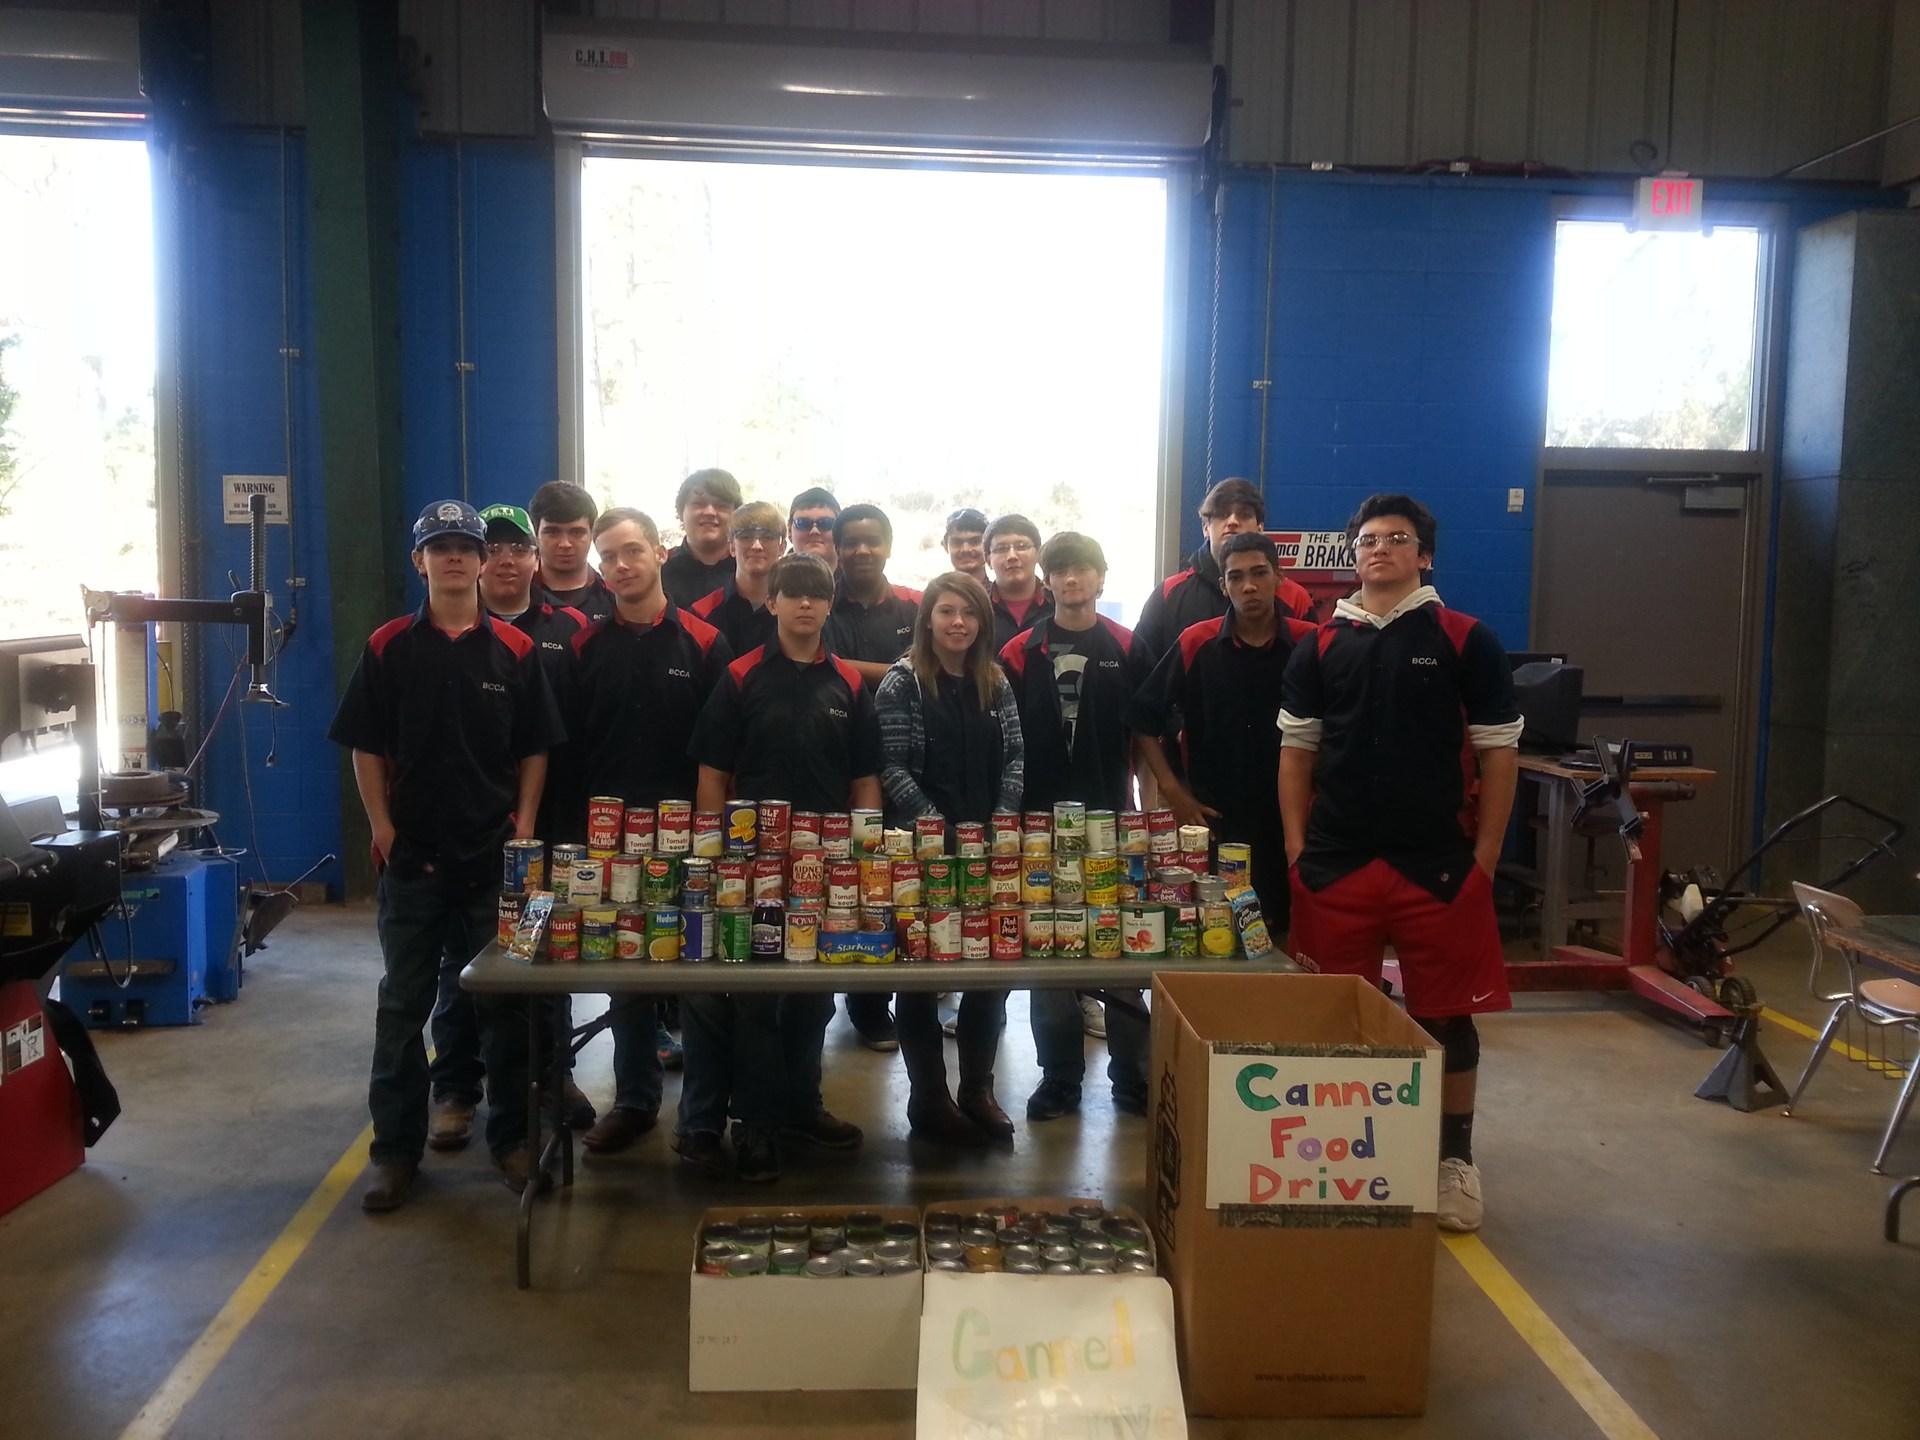 Auto students holding canned food drive.